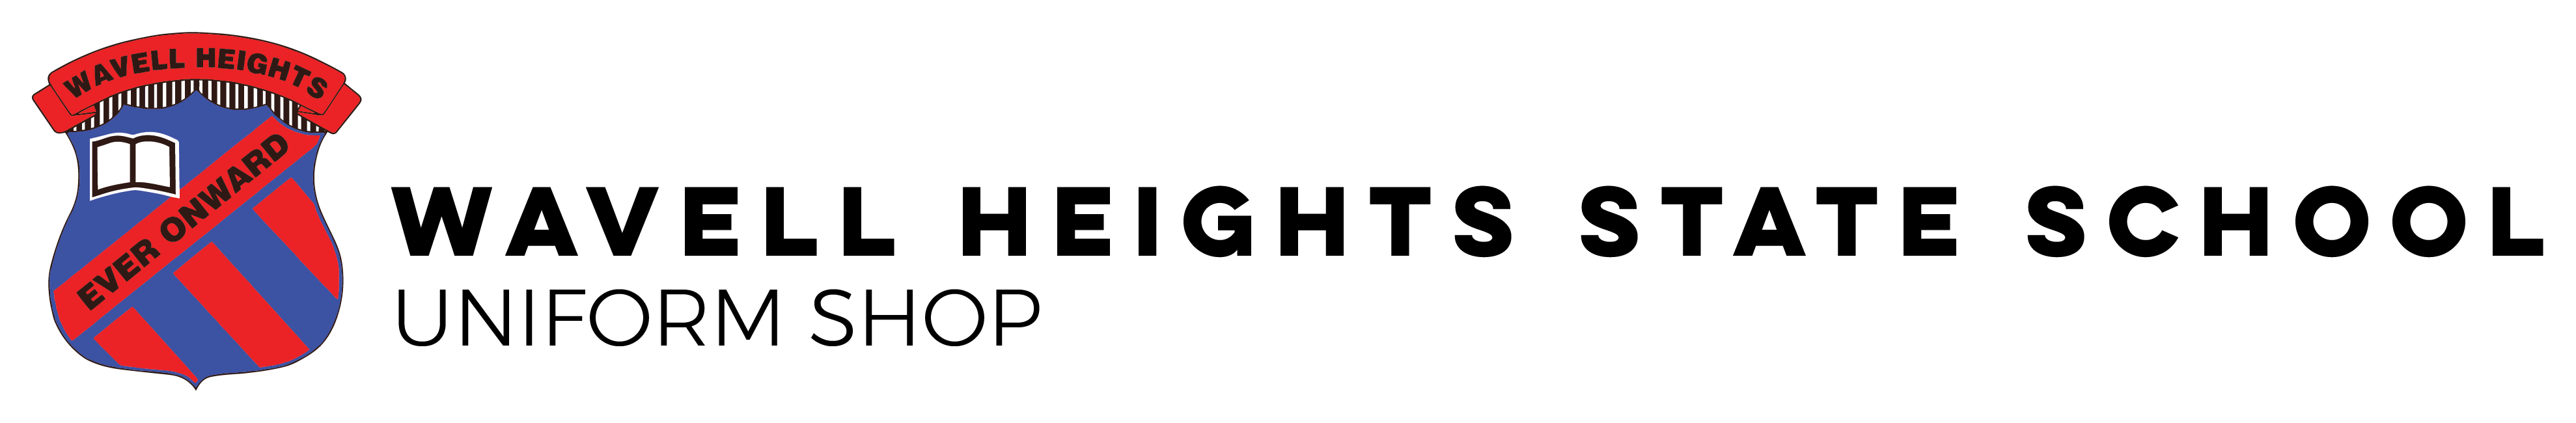 Wavell Heights Logo